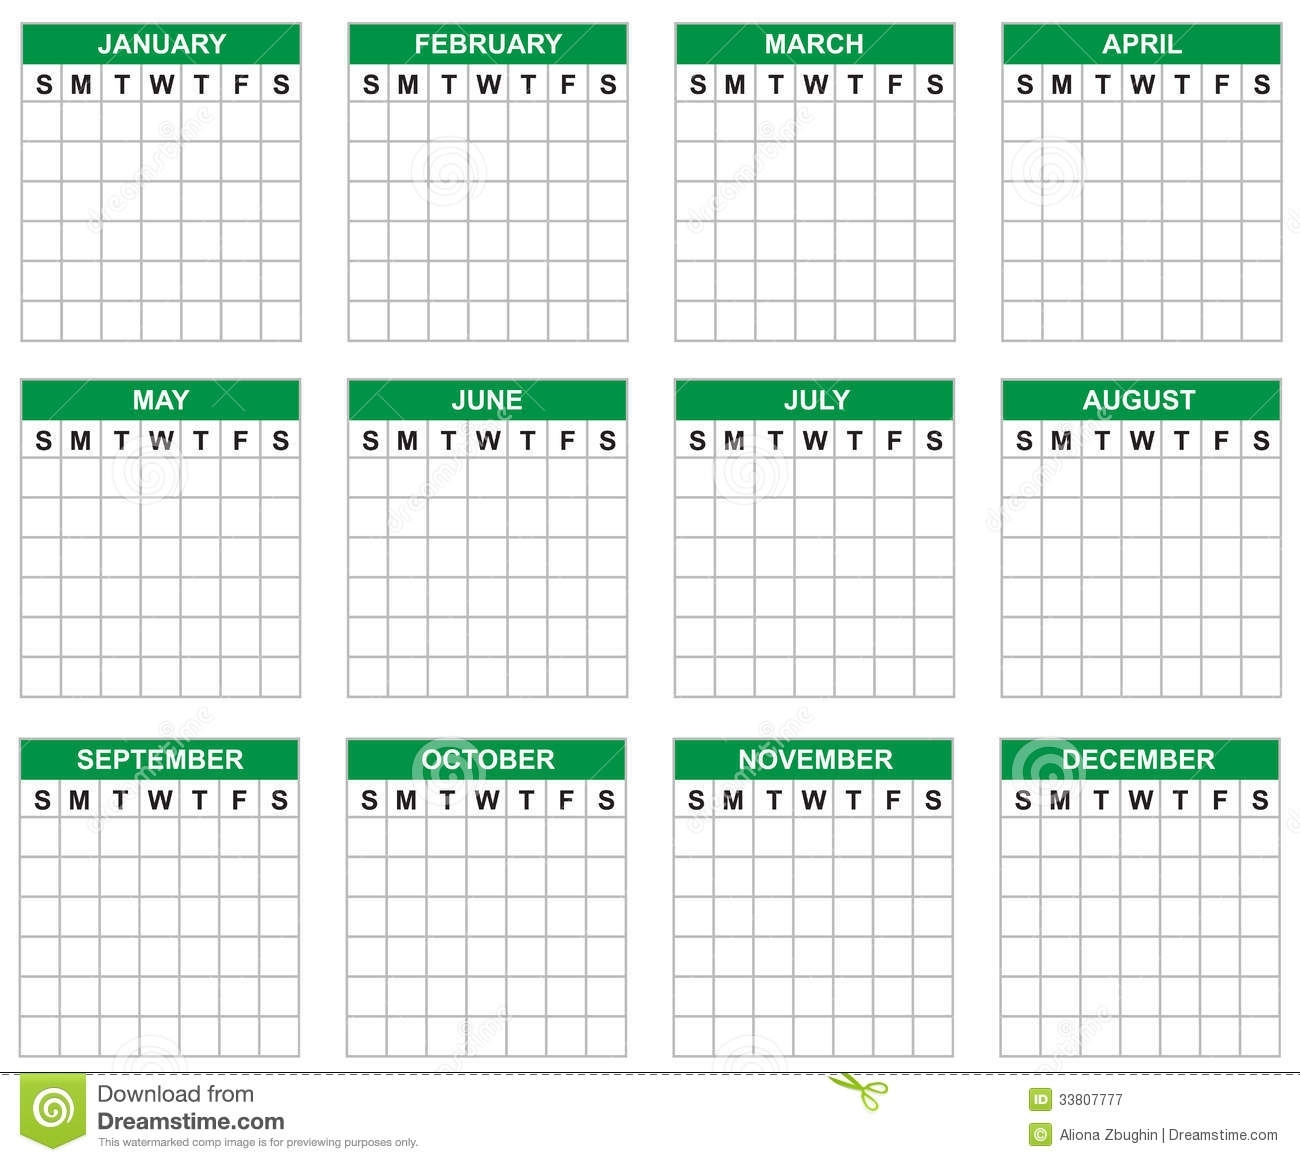 Blank Calendar Stock Vector. Illustration Of Grid, Isolated - 33807777 inside Calender Without Numbers And Month